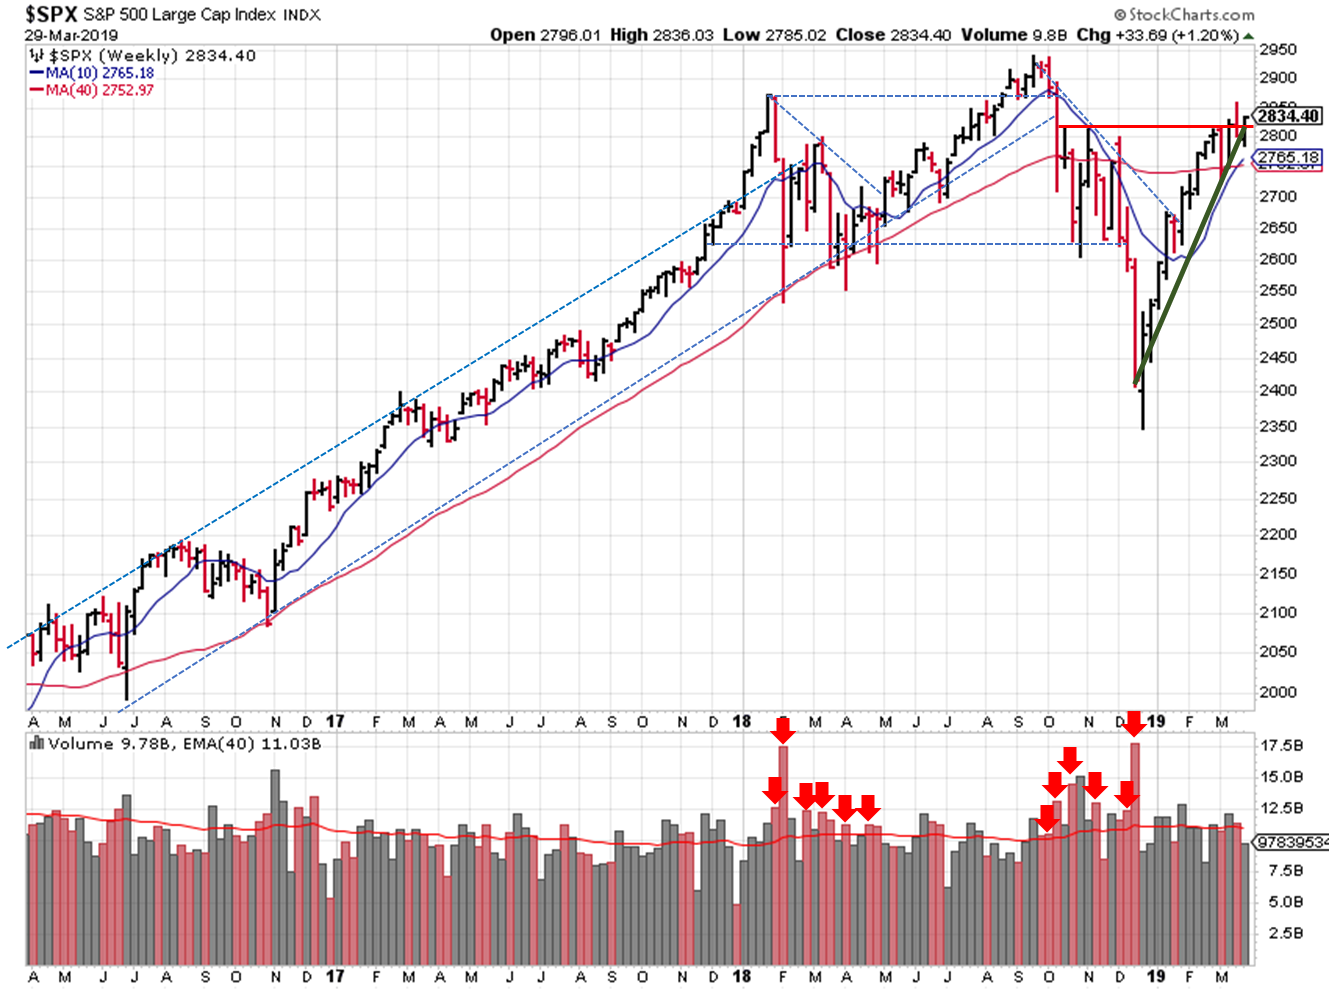 2019-03-31 - $SPX Trendline Analysis - Weekly